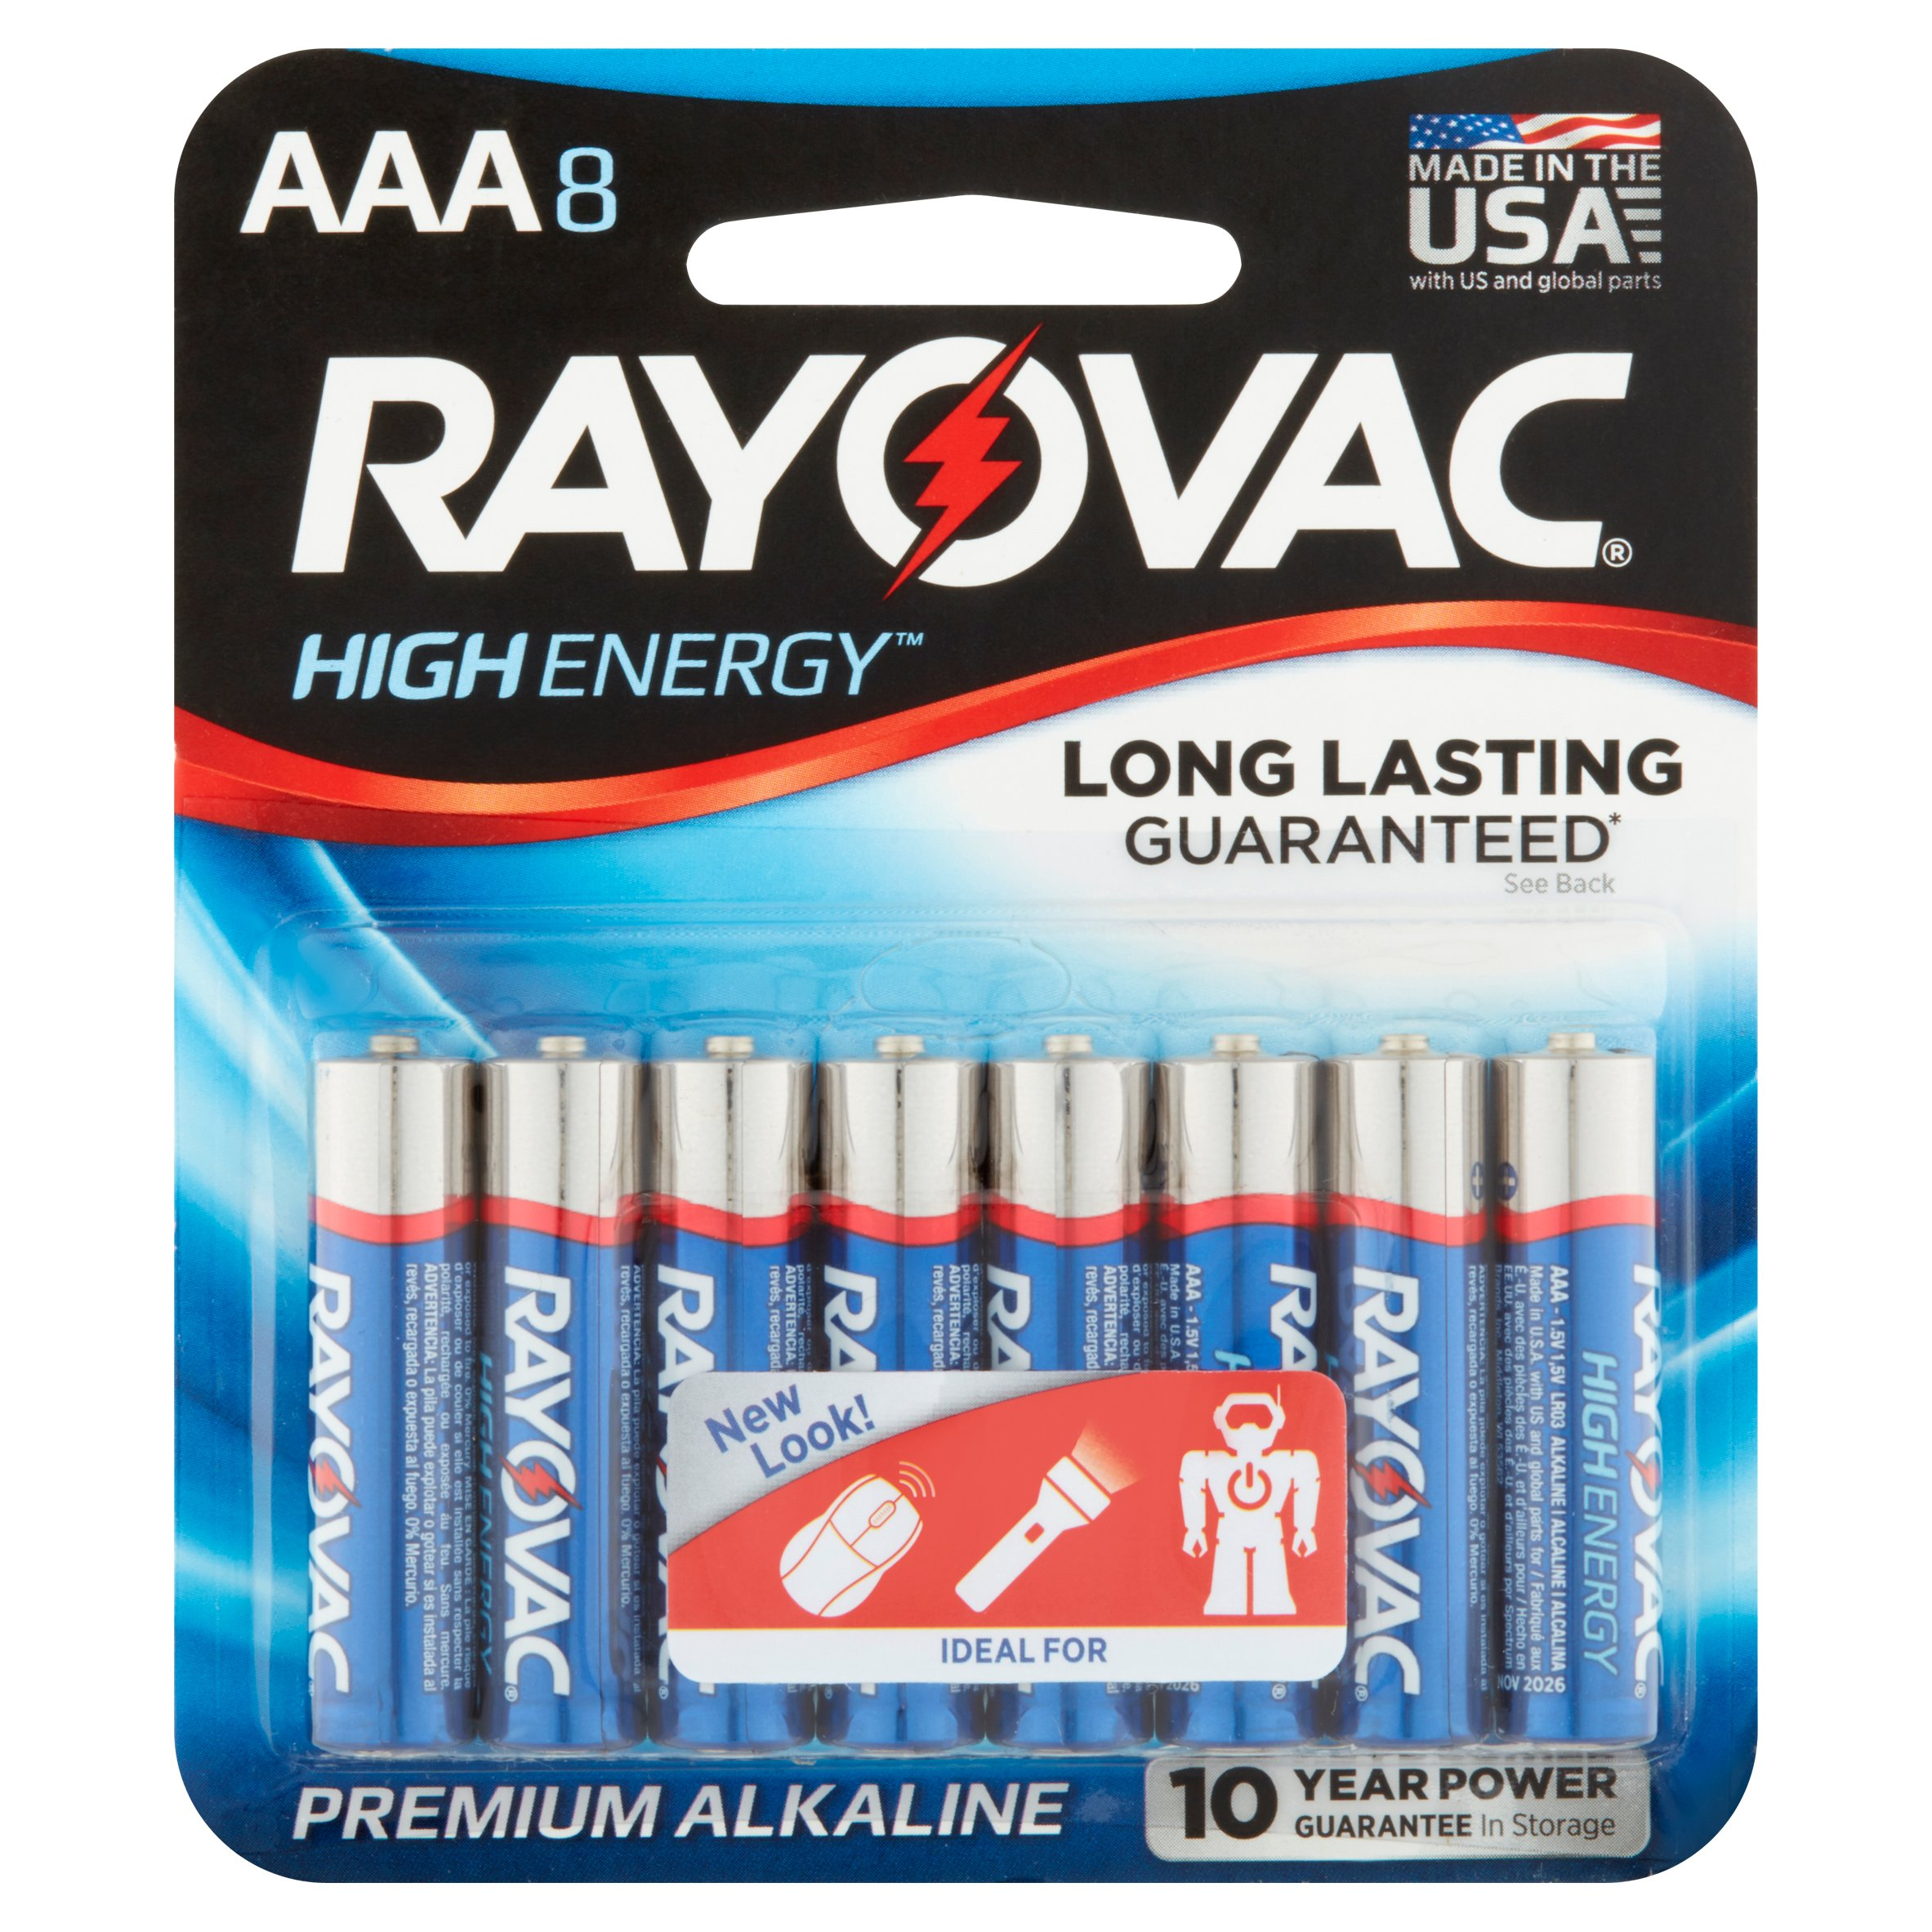 Rayovac High Energy Premium Alkaline AAA 1.5V Battery, 8 count